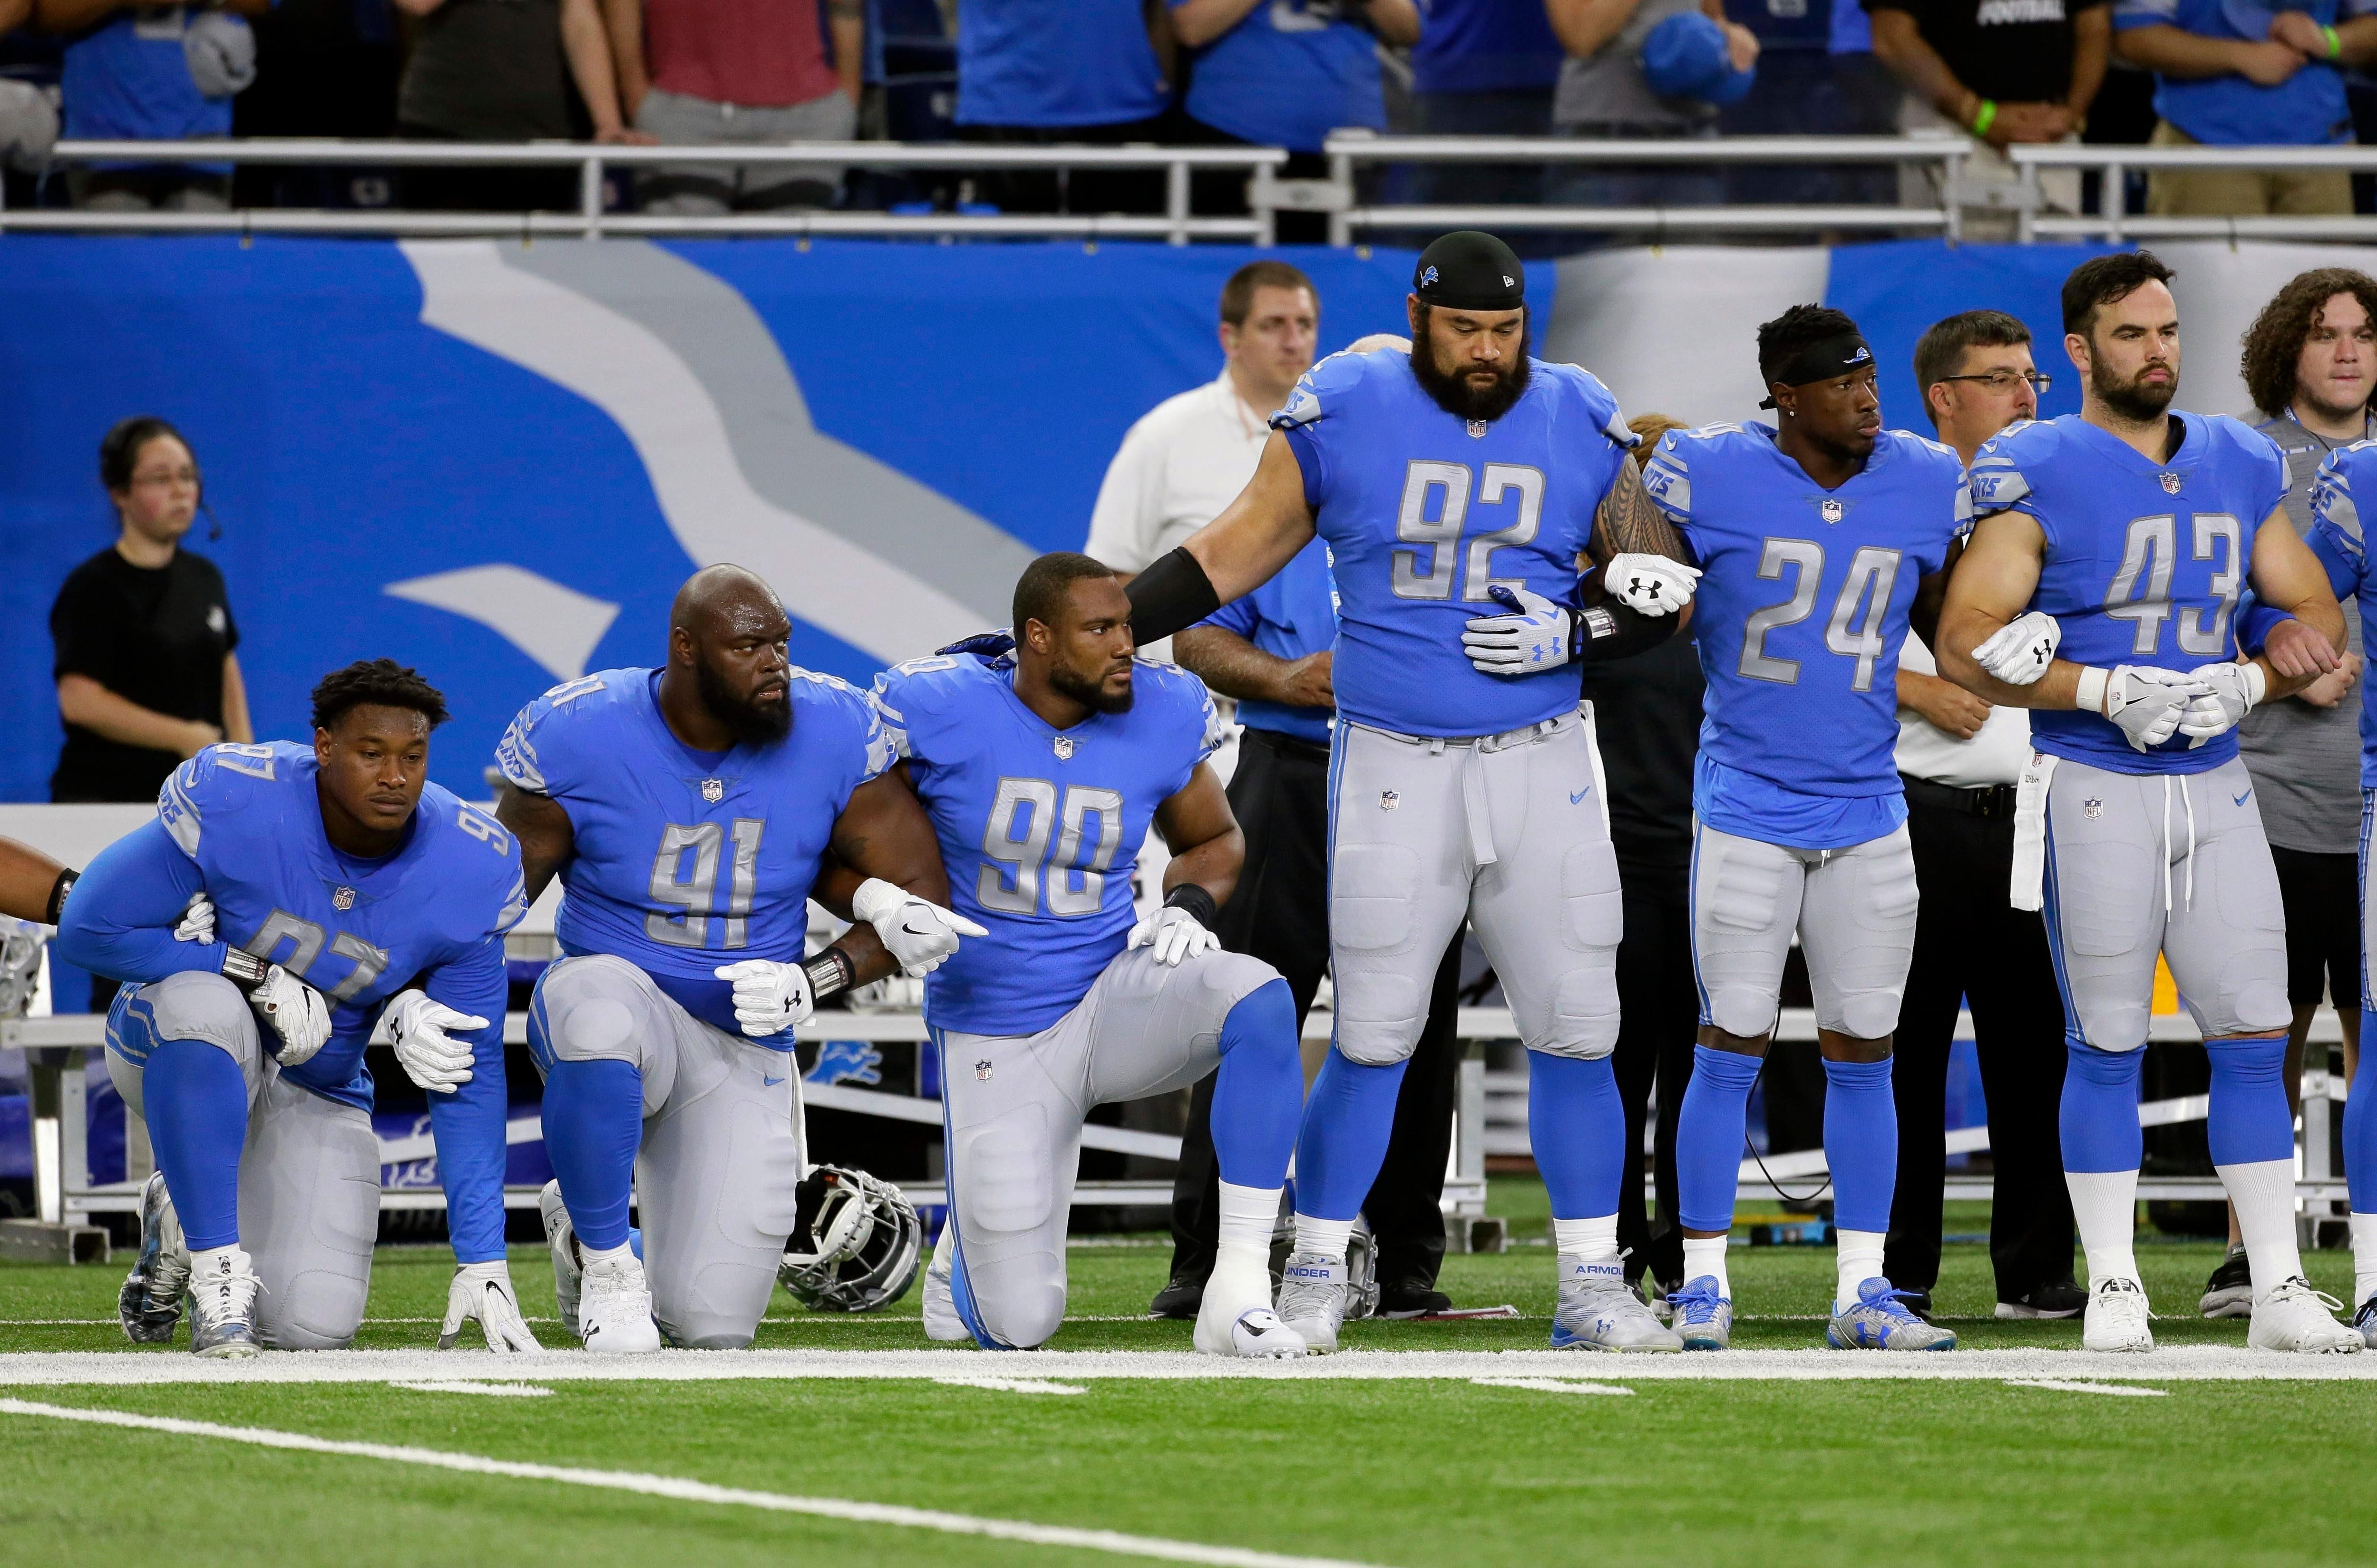 "FILE- In a file photo from Sept. 24, 2017, Detroit Lions defensive end Armonty Bryant (97), defensive tackle A'Shawn Robinson (91) and defensive end Cornelius Washington (90) take a knee during the national anthem before an NFL football game against the Atlanta Falcons, in Detroit. The sight of football players kneeling during the national anthem across the United States is the continuation of a tradition nearly as old the song itself. University of Michigan musicology professor Mark Clague says ""The Star-Spangled Banner"" has been a channel for protest since at least the 1840s. The lyrics were recast as an anti-slavery song and it's been used or reworked to push for racial equality, women's suffrage, prohibition and labor rights. (AP Photo/Duane Burleson, File)"